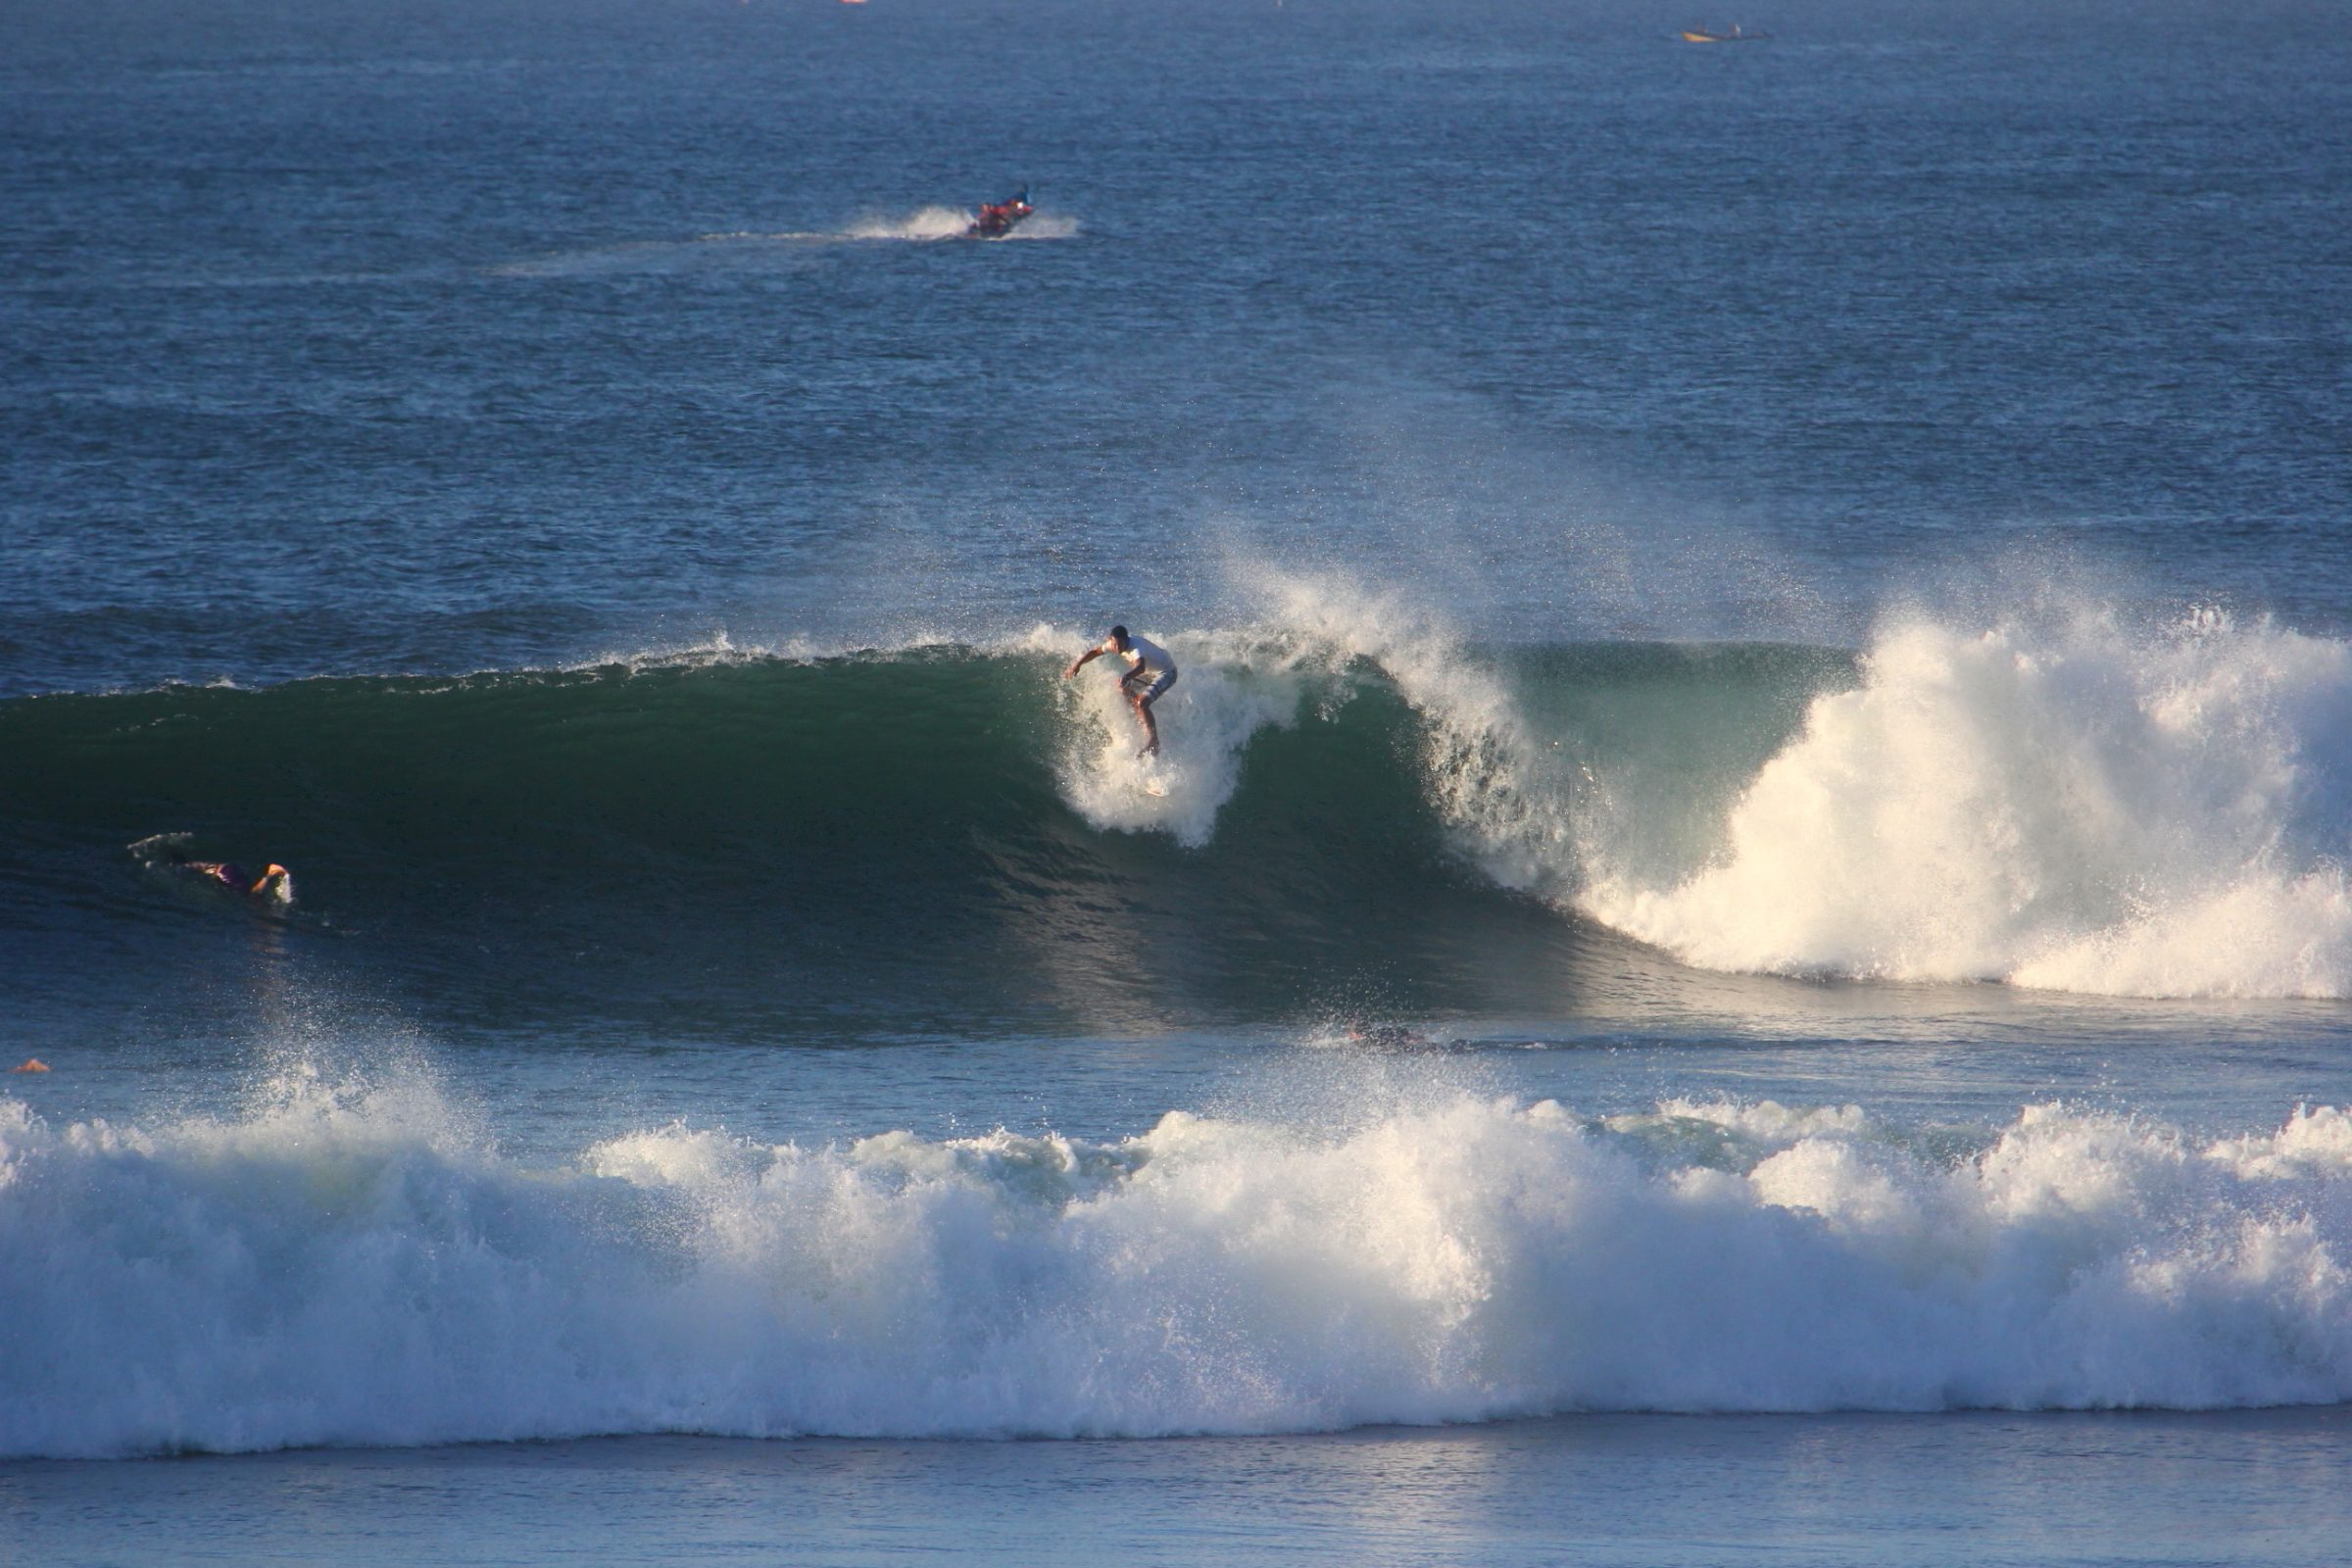 Waves at Las Flores in El Salvador